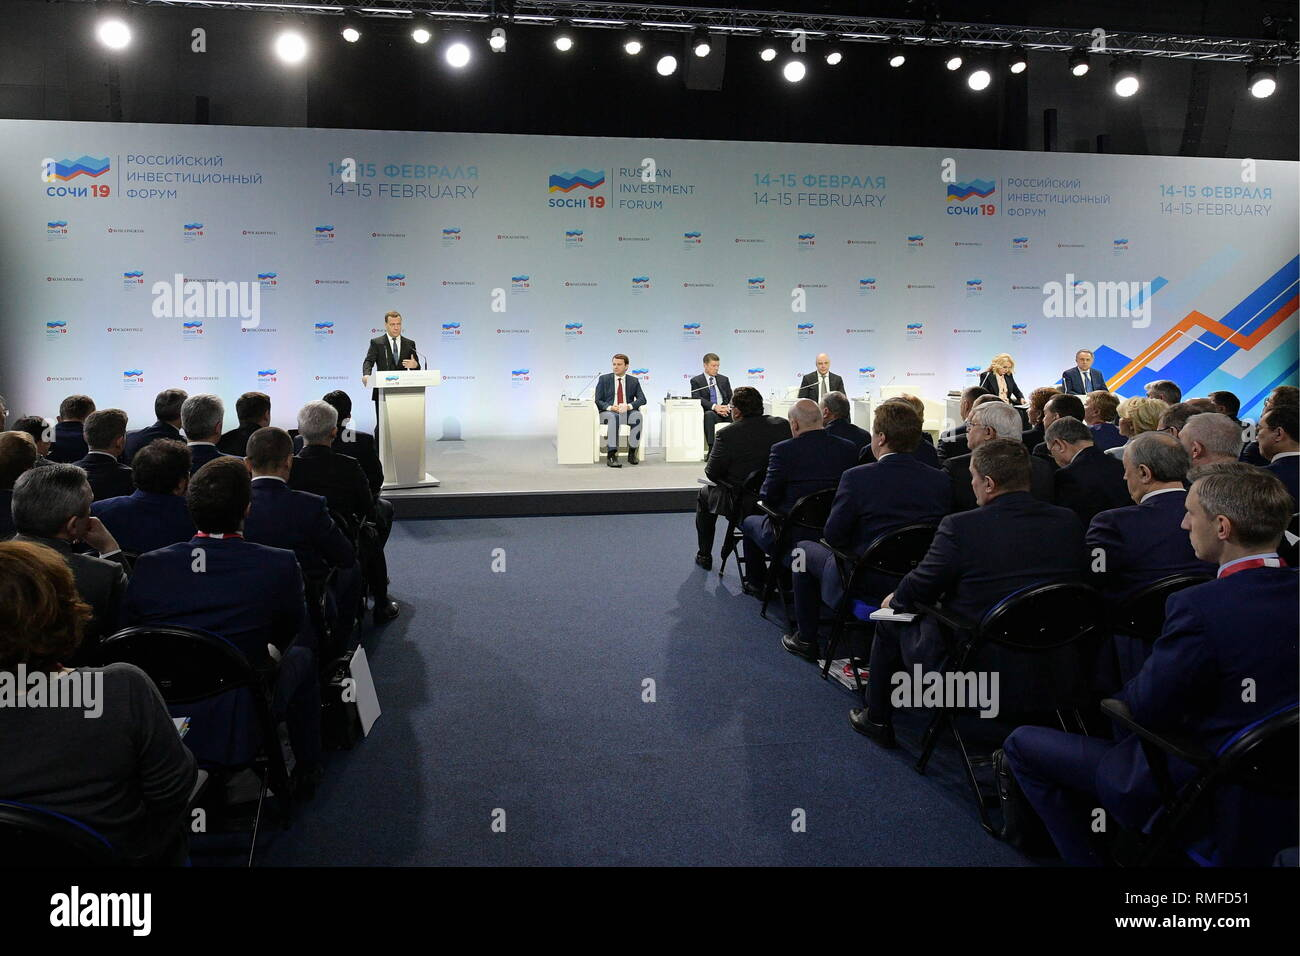 Sochi, Russia. 15th Feb, 2019. SOCHI, RUSSIA - FEBRUARY 15, 2019: Russia's Prime Minister Dmitry Medvedev (L back) addresses regional leaders during a meeting at the Galaxy Social and Cultural Centre of the Rosa Khutor Resort as part of the 2019 Russian Investment Forum in Sochi. Dmitry Astakhov/Russian Government Press Office/TASS Credit: ITAR-TASS News Agency/Alamy Live News - Stock Image